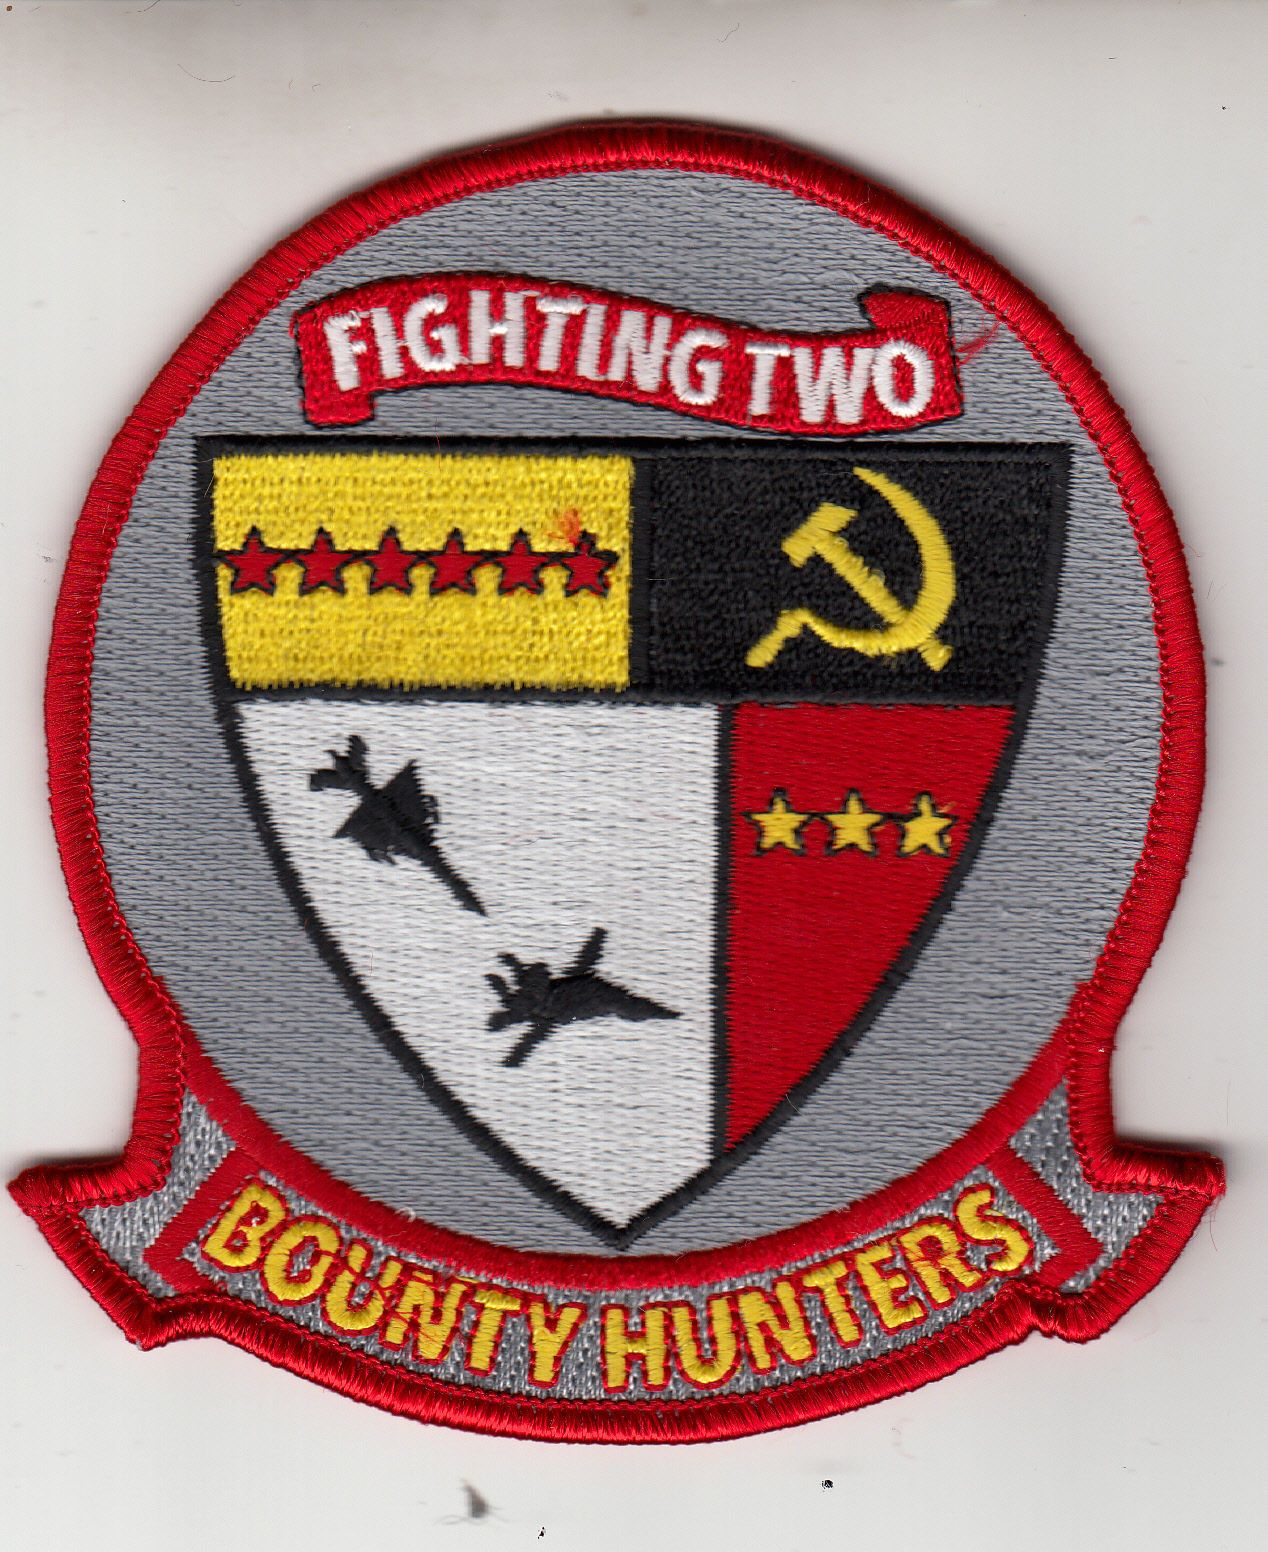 Vfa 2 bounty hunters red air command chest patch us navy vfa 2 bounty hunters red air command chest patch buycottarizona Image collections